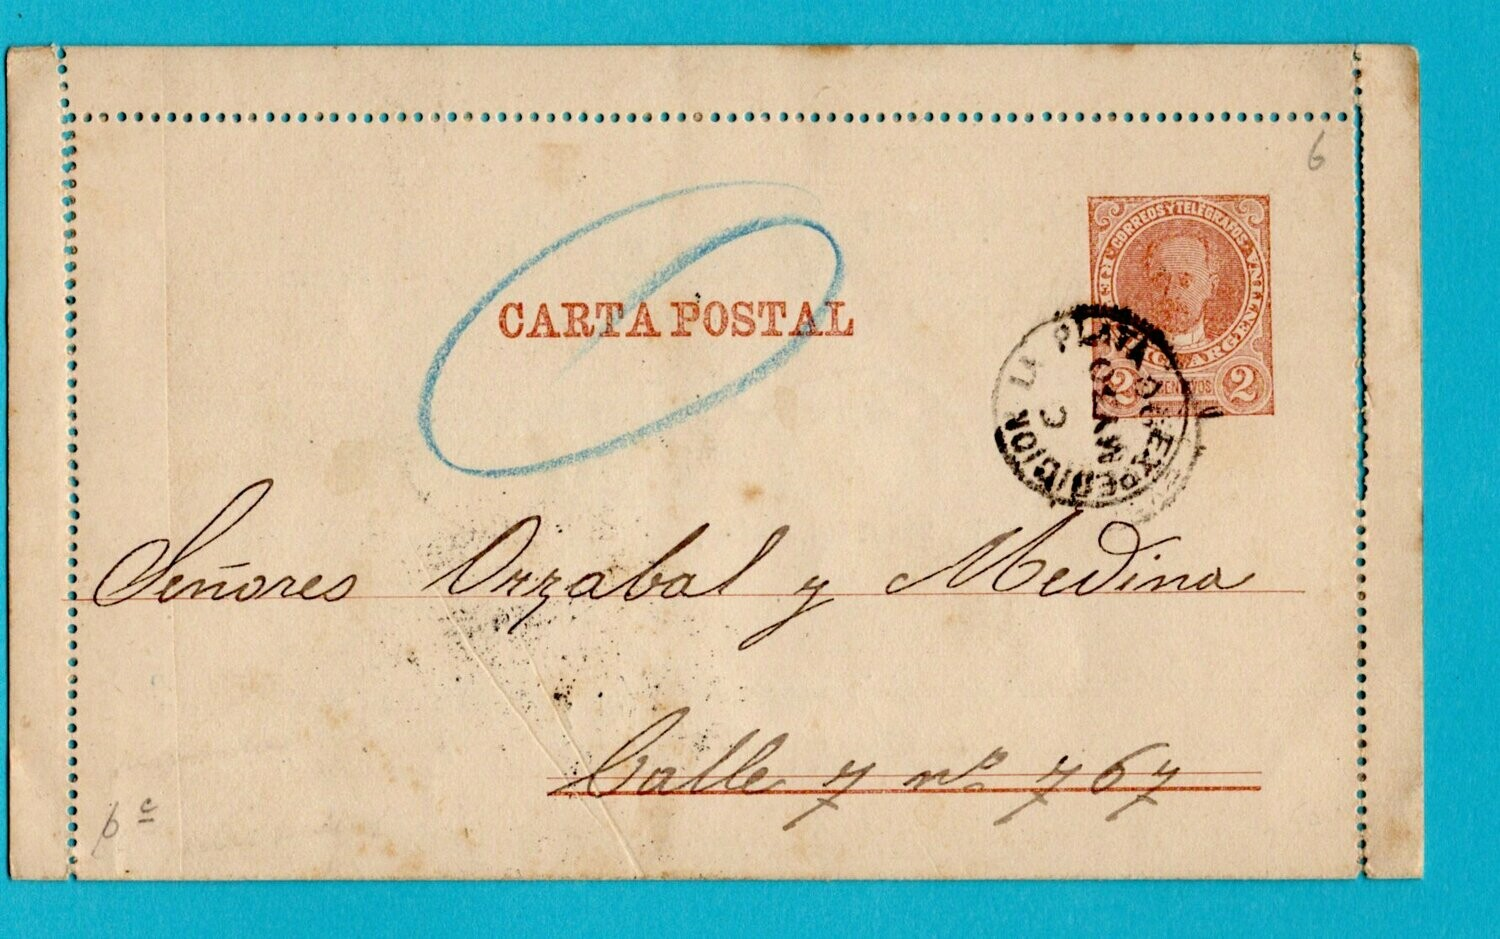 ARGENTINA letter sheet 1890 La Plata advertised